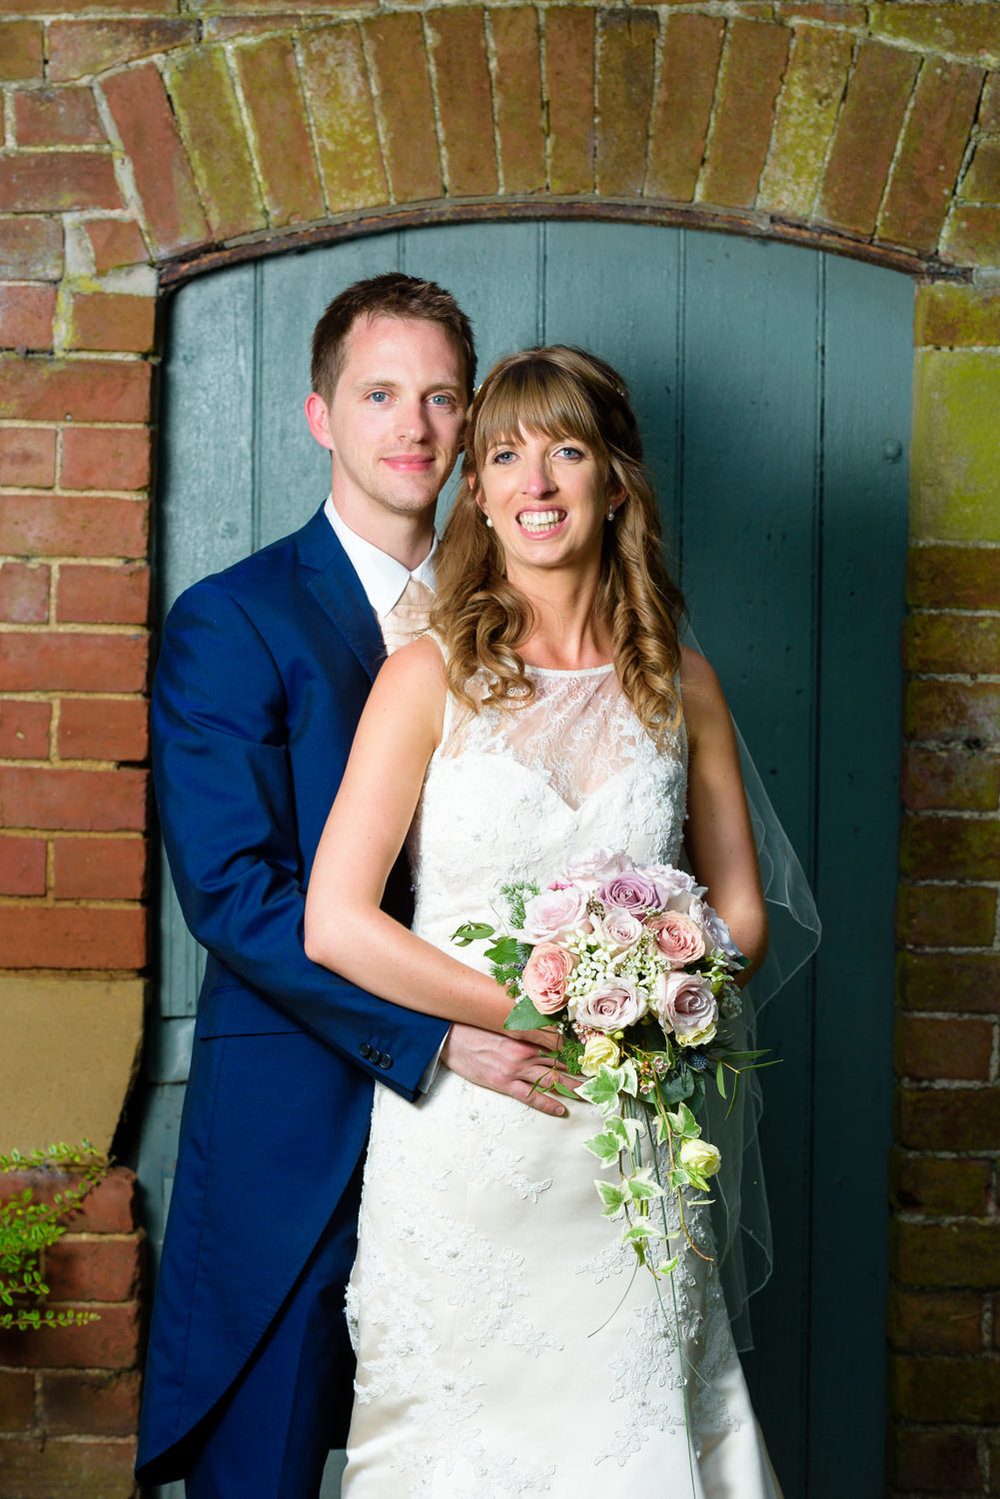 Wedding portrait at Callow Hall